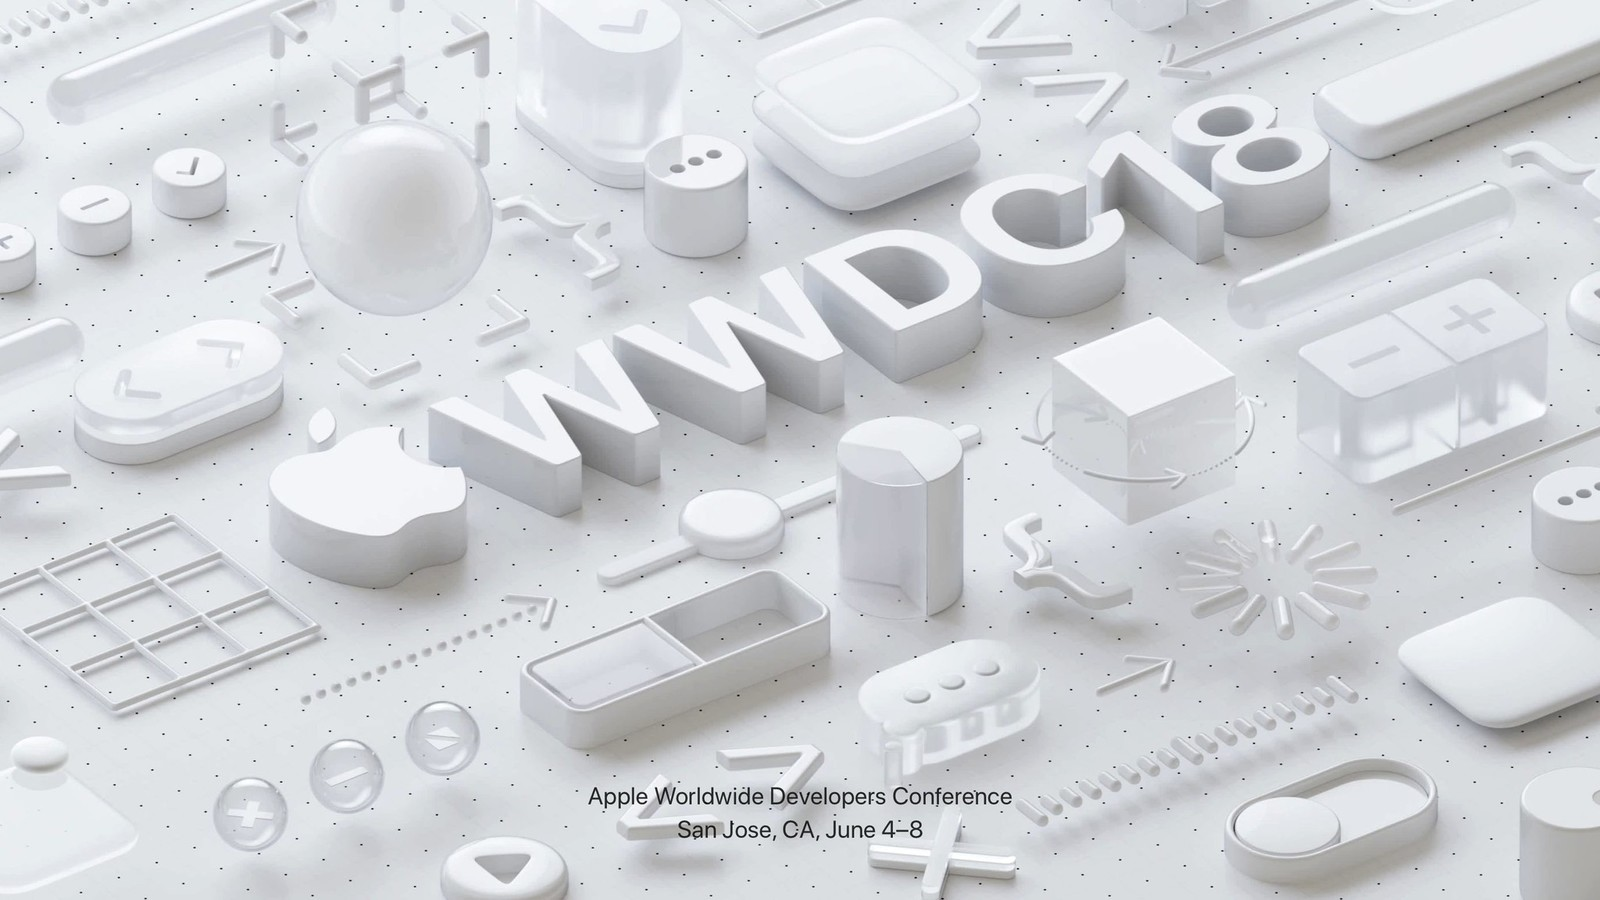 Apple to Announce New Siri Voice and Features at WWDC